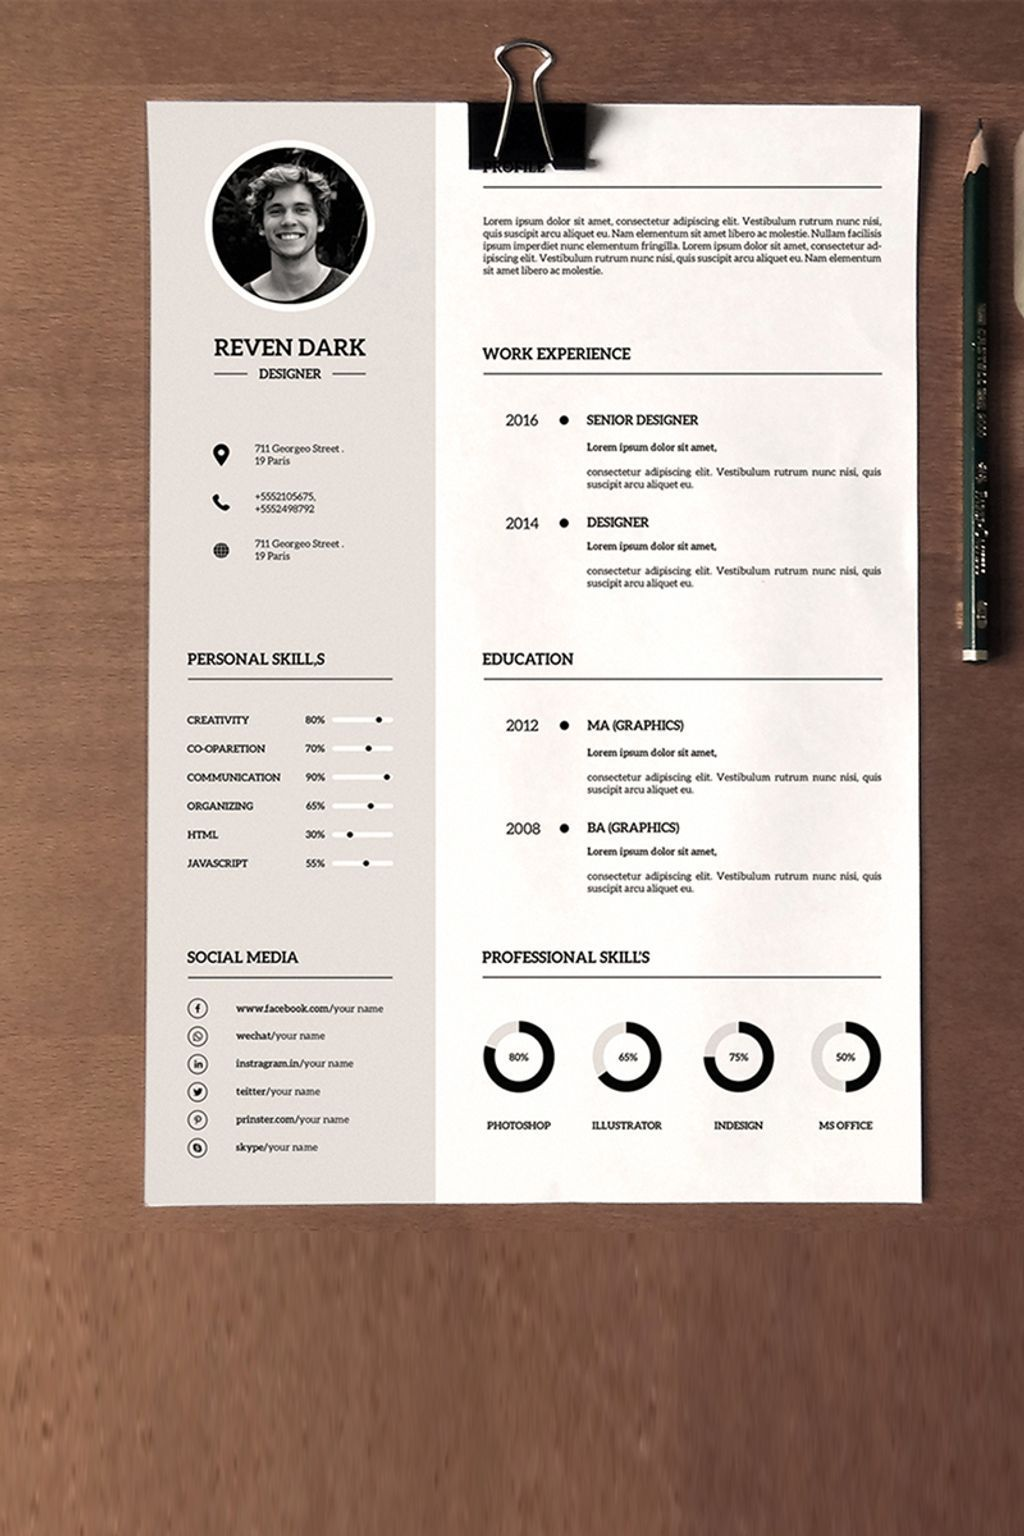 Reven Dark Clean Resume Template 77077 Clean resume